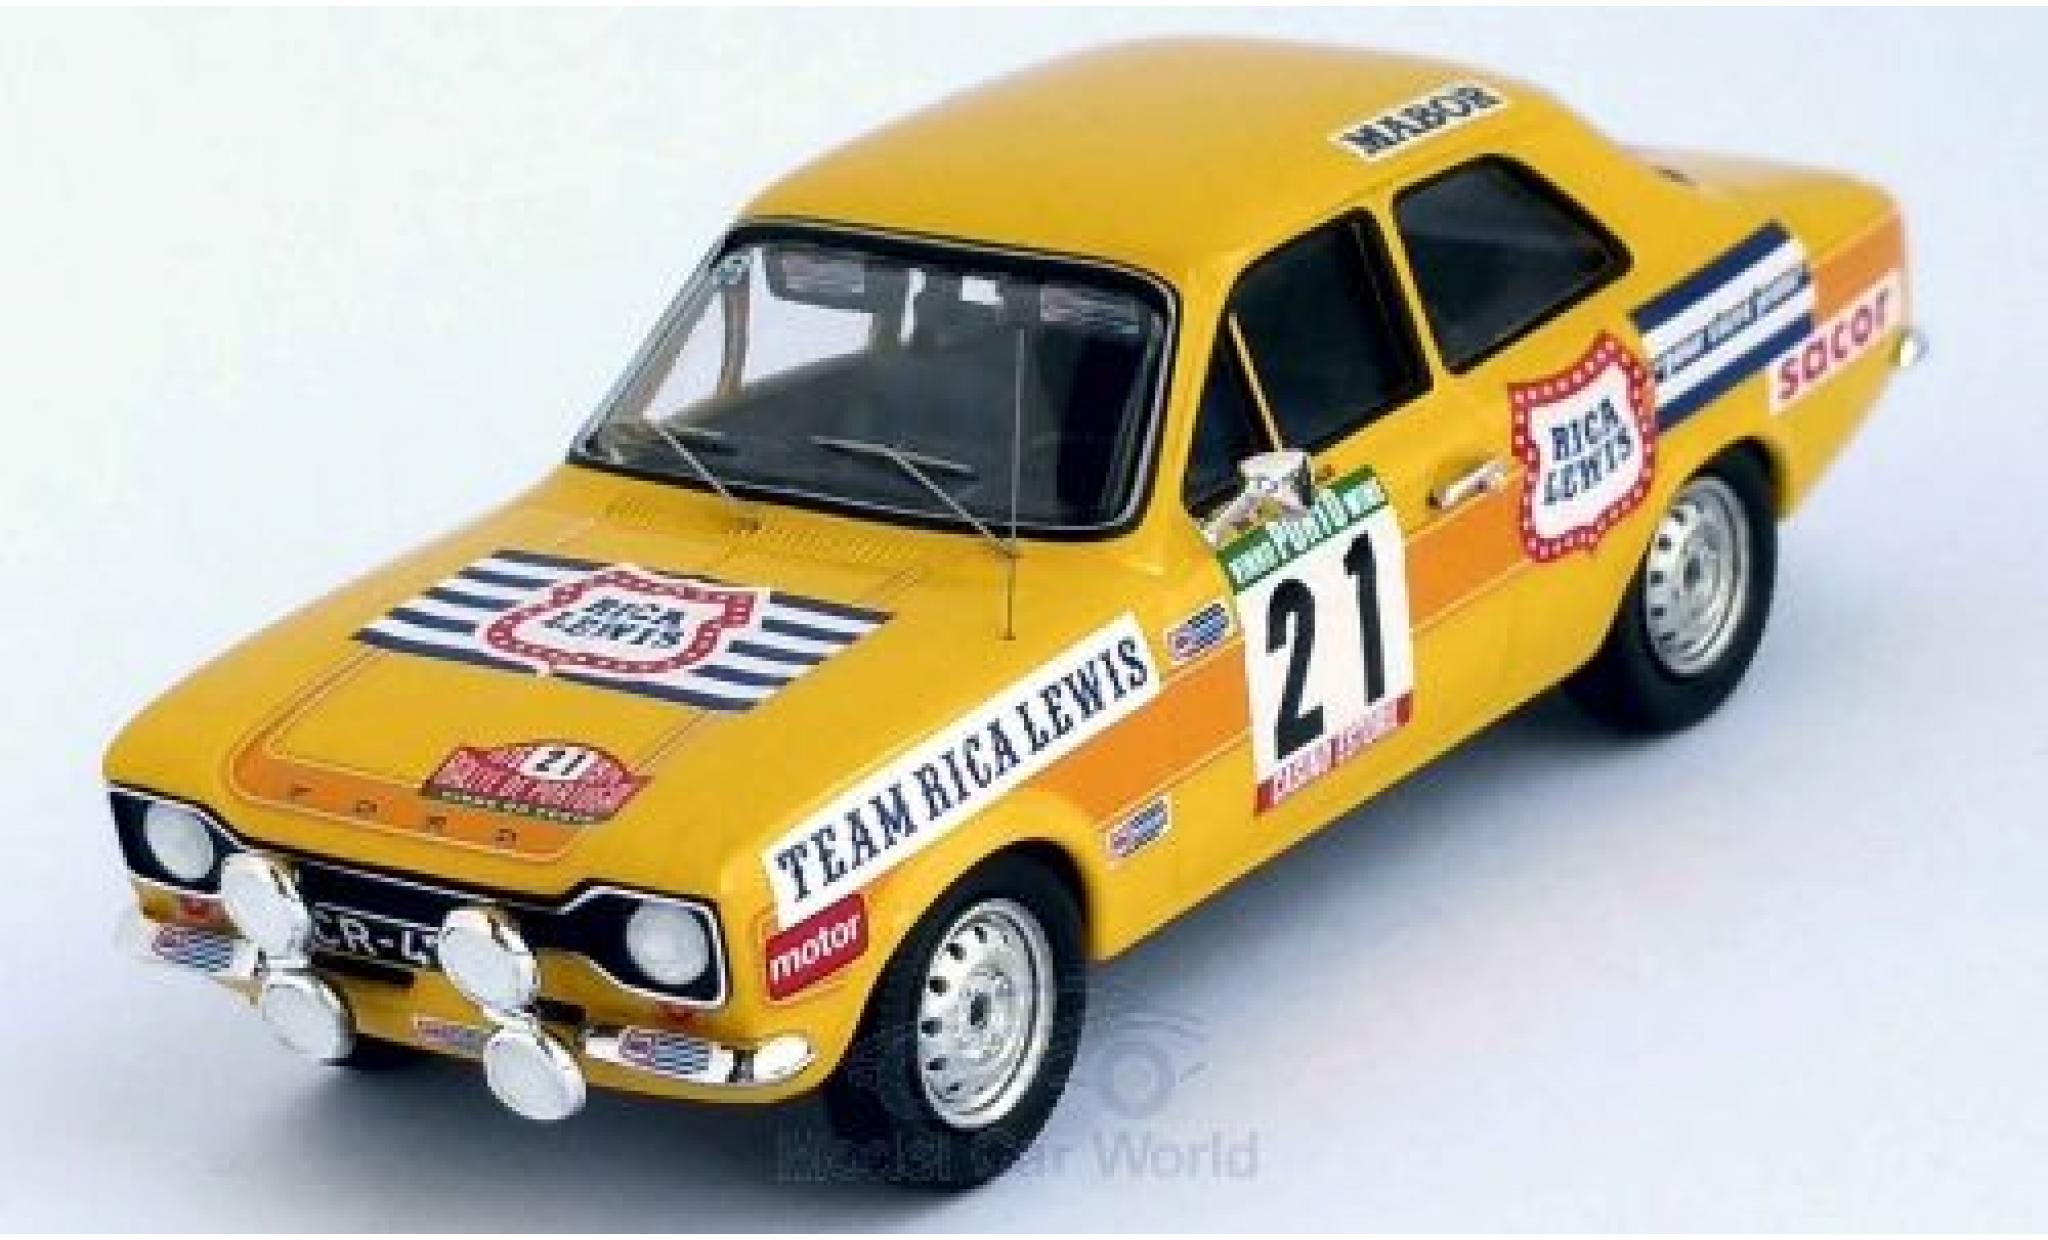 Ford Escort 1/43 Trofeu MK I RS 2000 No.21 Team Rica Lewis Rallye WM Rally Portugal 1976 G.Salvi/P.de Almeida